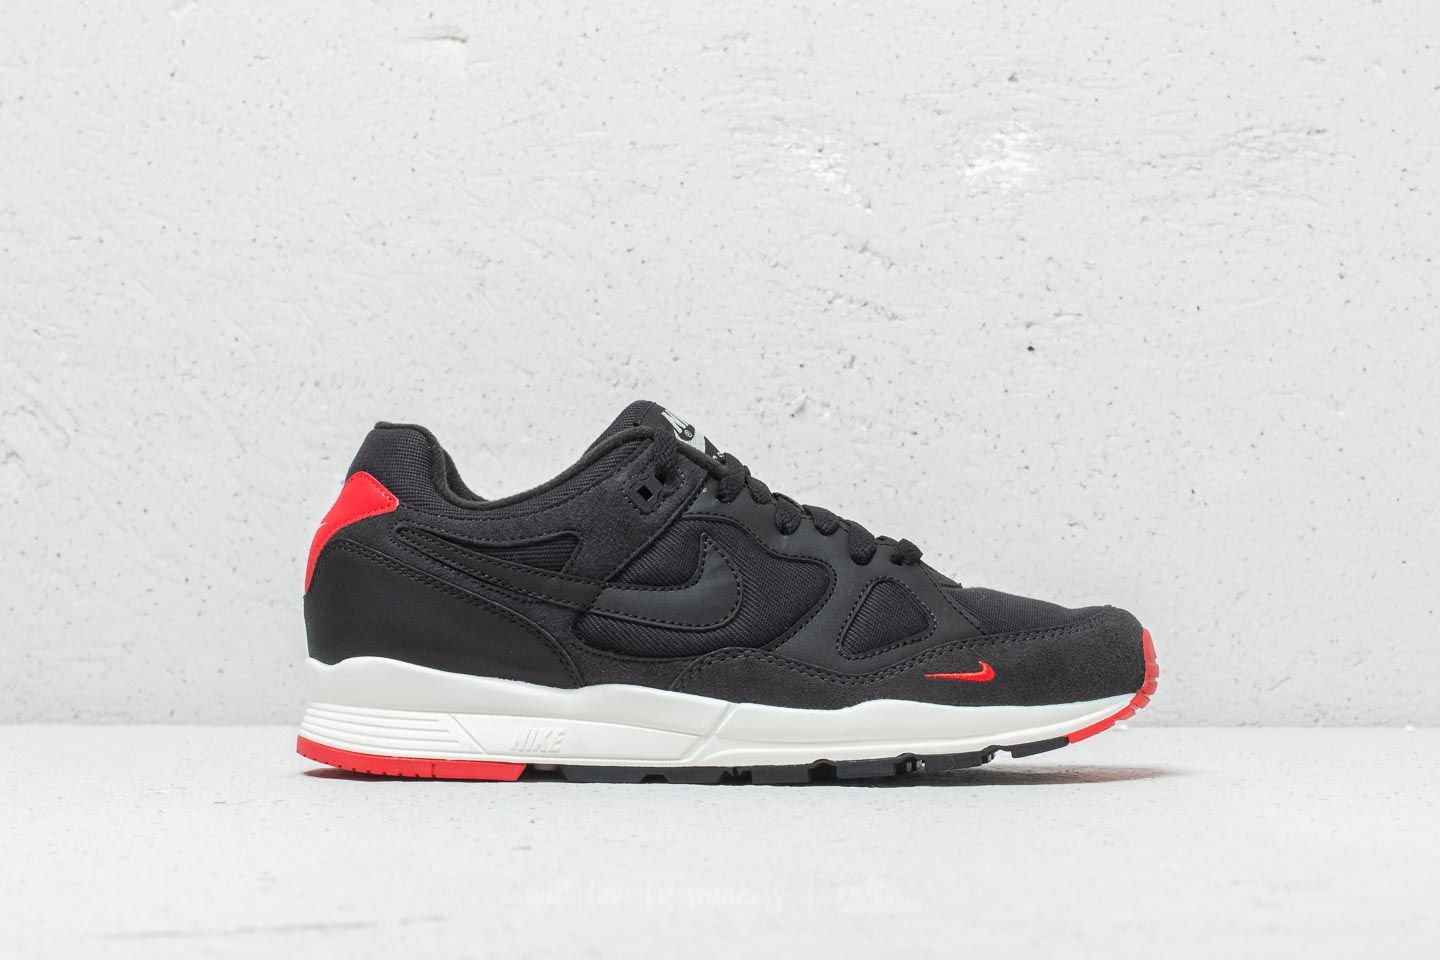 official photos a7027 40629 Nike Air Span II SE Oil Grey  Black-University Red at a great price